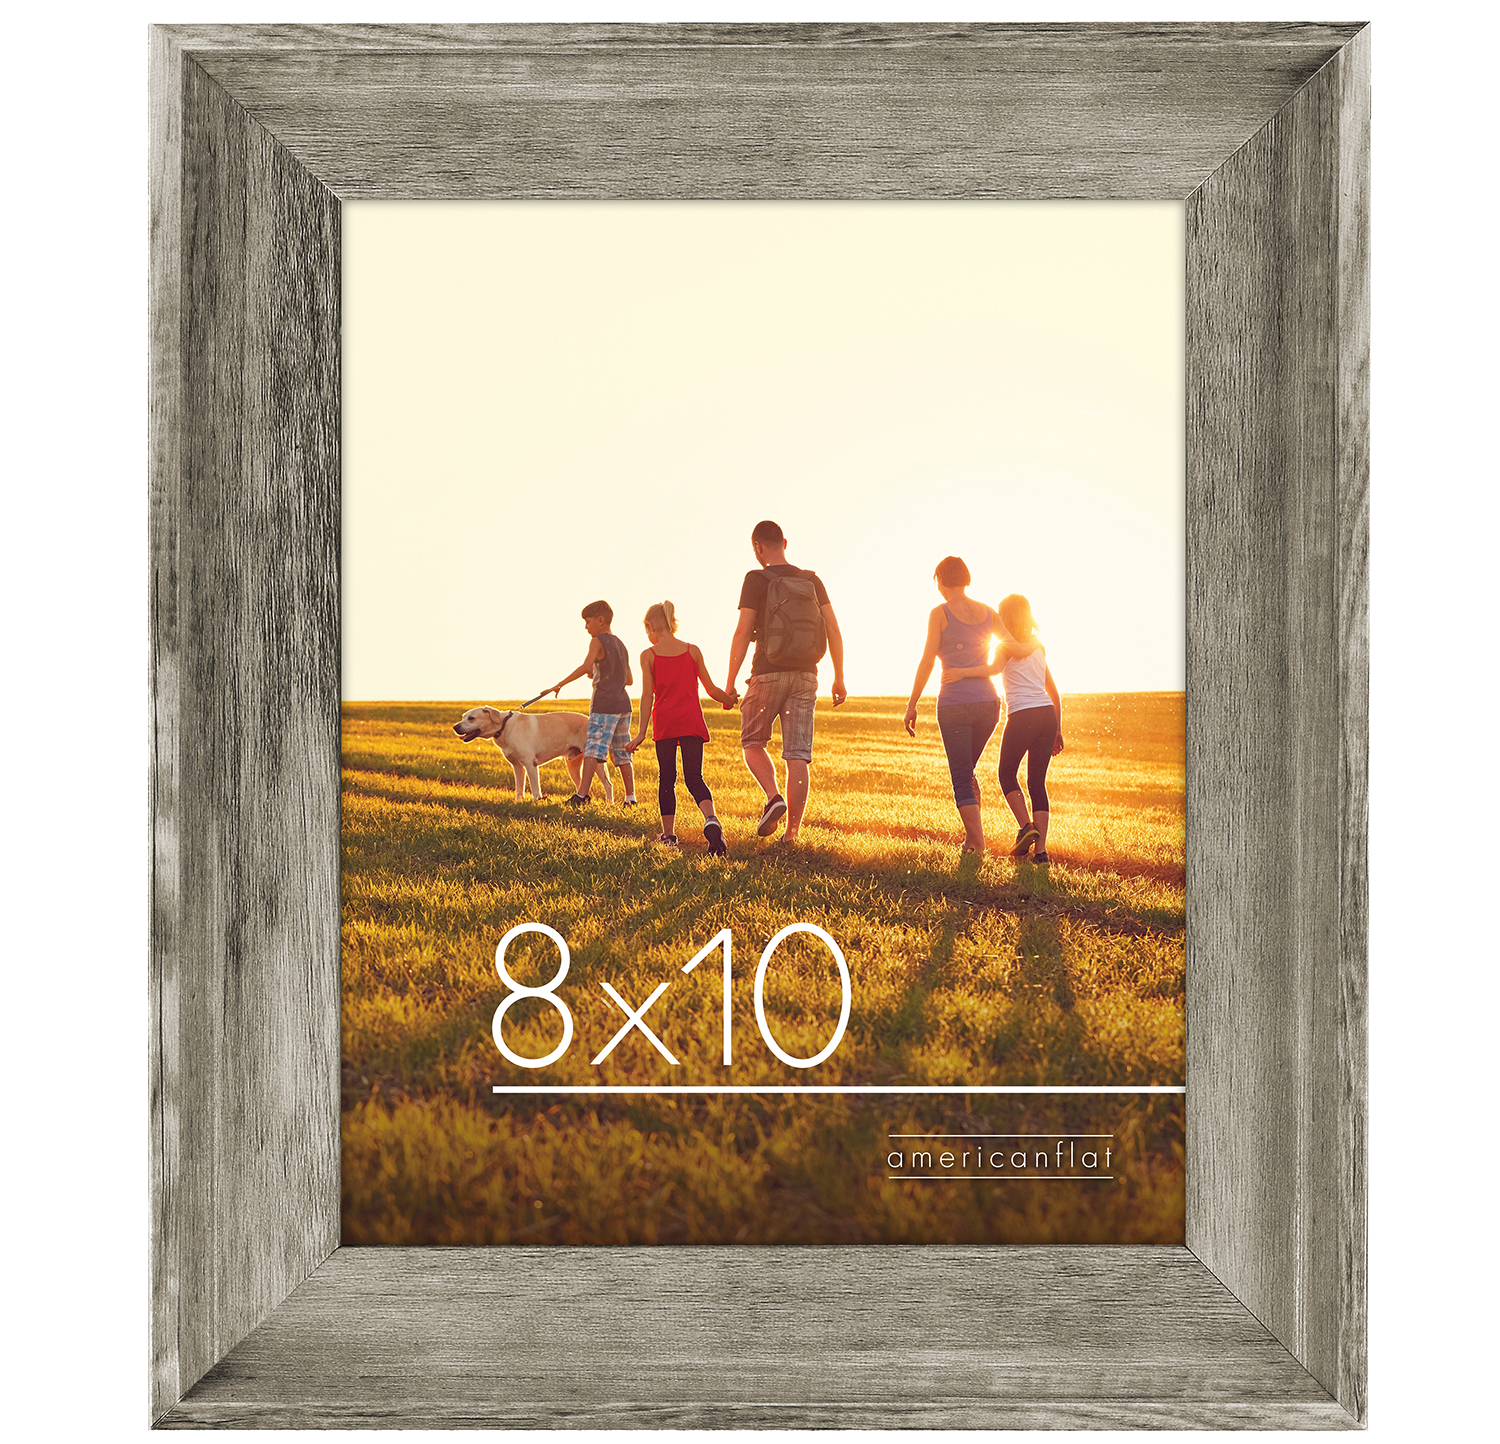 miniature 7 - Americanflat Wood Picture Frame 4x6 5x7 8x10 Wall Tabletop Easel Pick Size Color